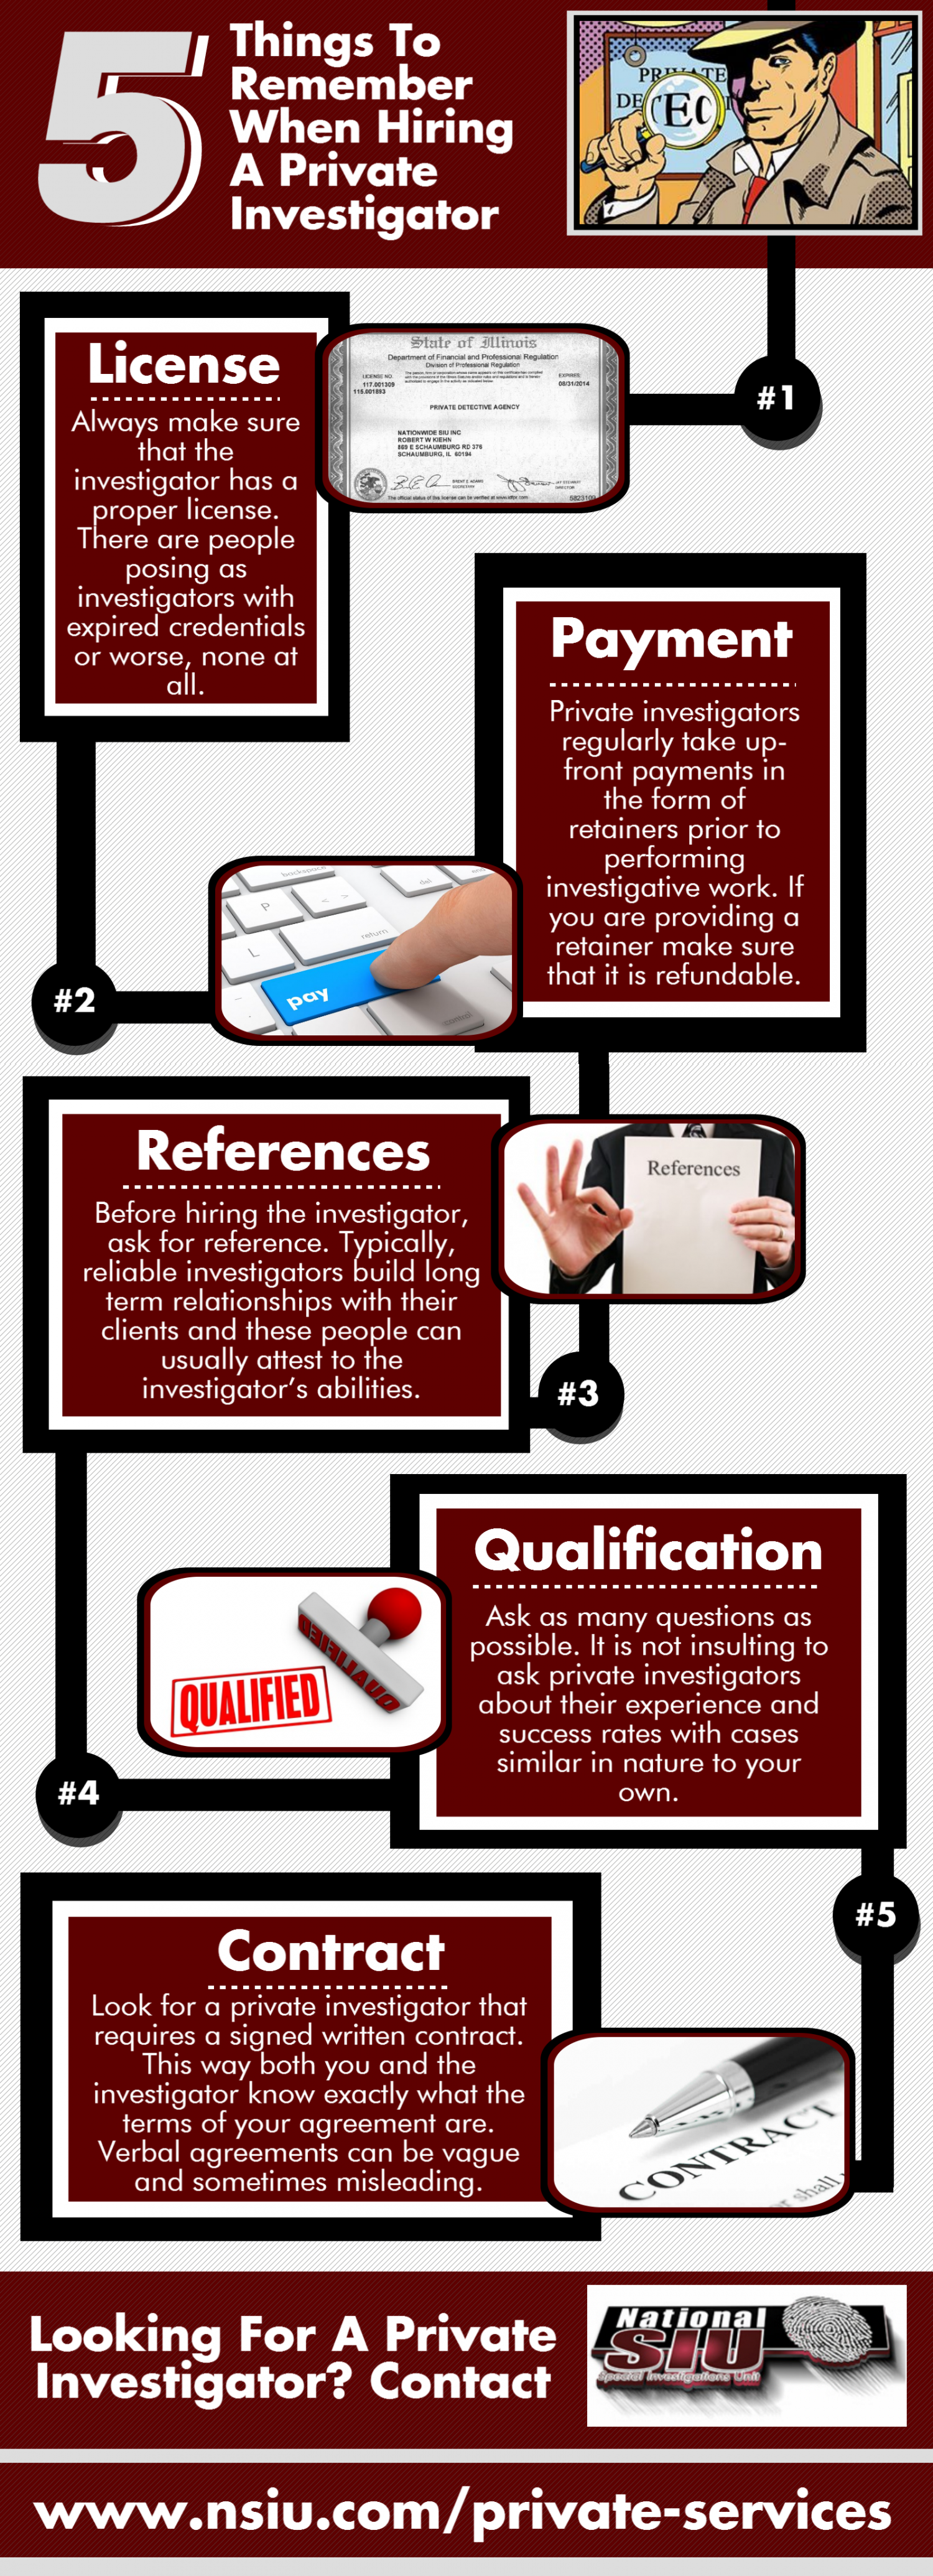 5 Things To Remember When Hiring A Private Investigator Infographic